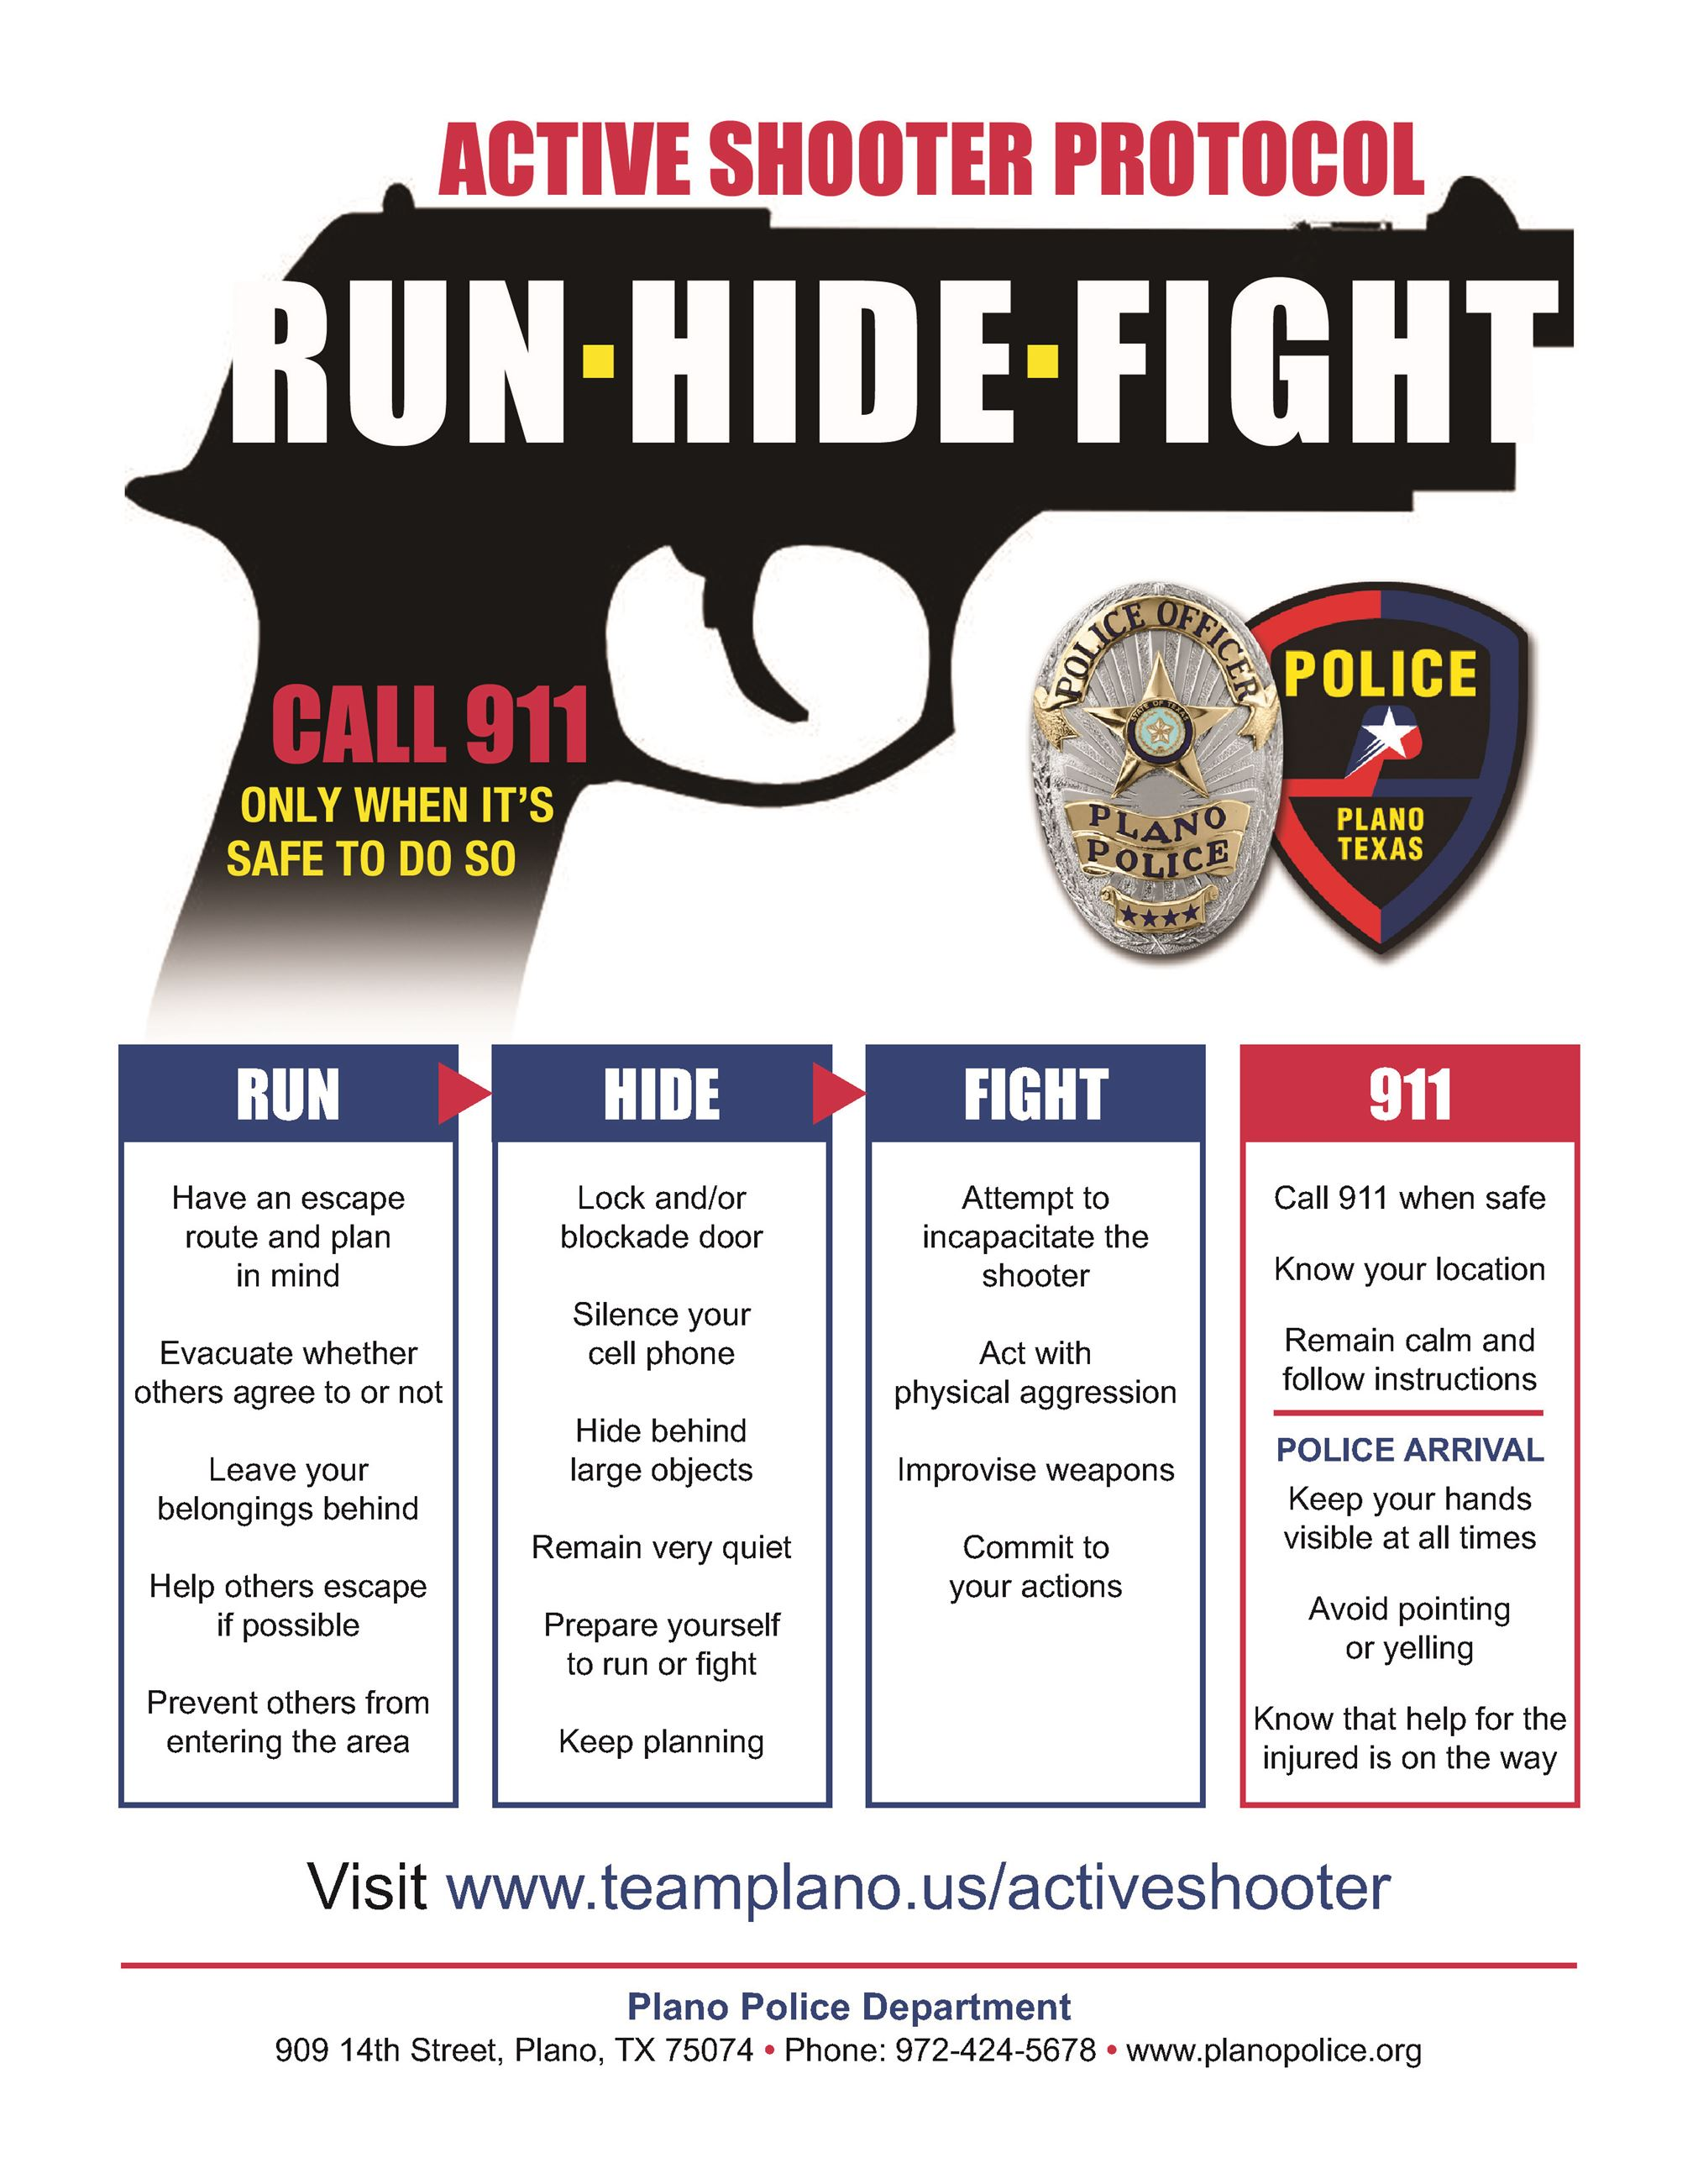 ACTIVE SHOOTER FLYER Version CITY_ACTIVE SHOOTER FLYER